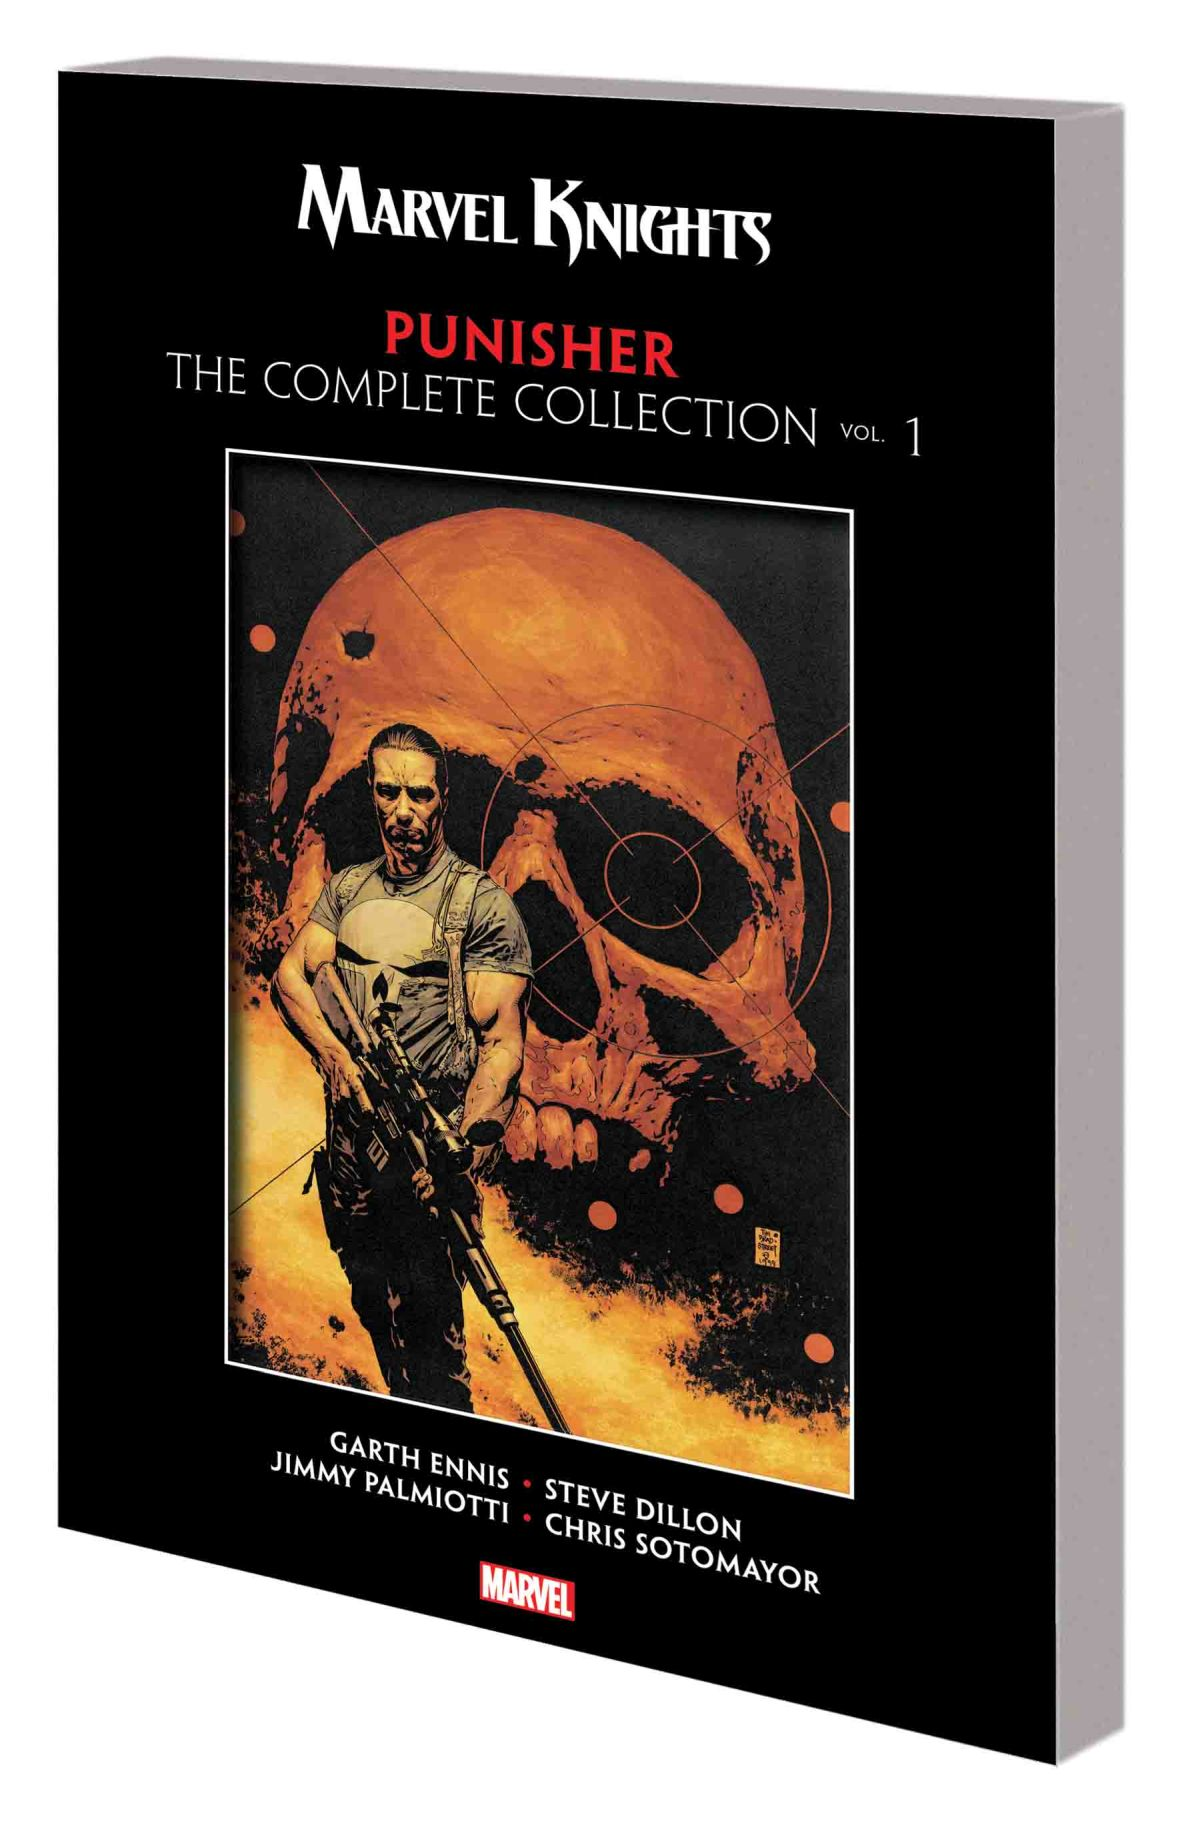 MARVEL KNIGHTS PUNISHER BY GARTH ENNIS: THE COMPLETE COLLECTION VOL. 1 TPB